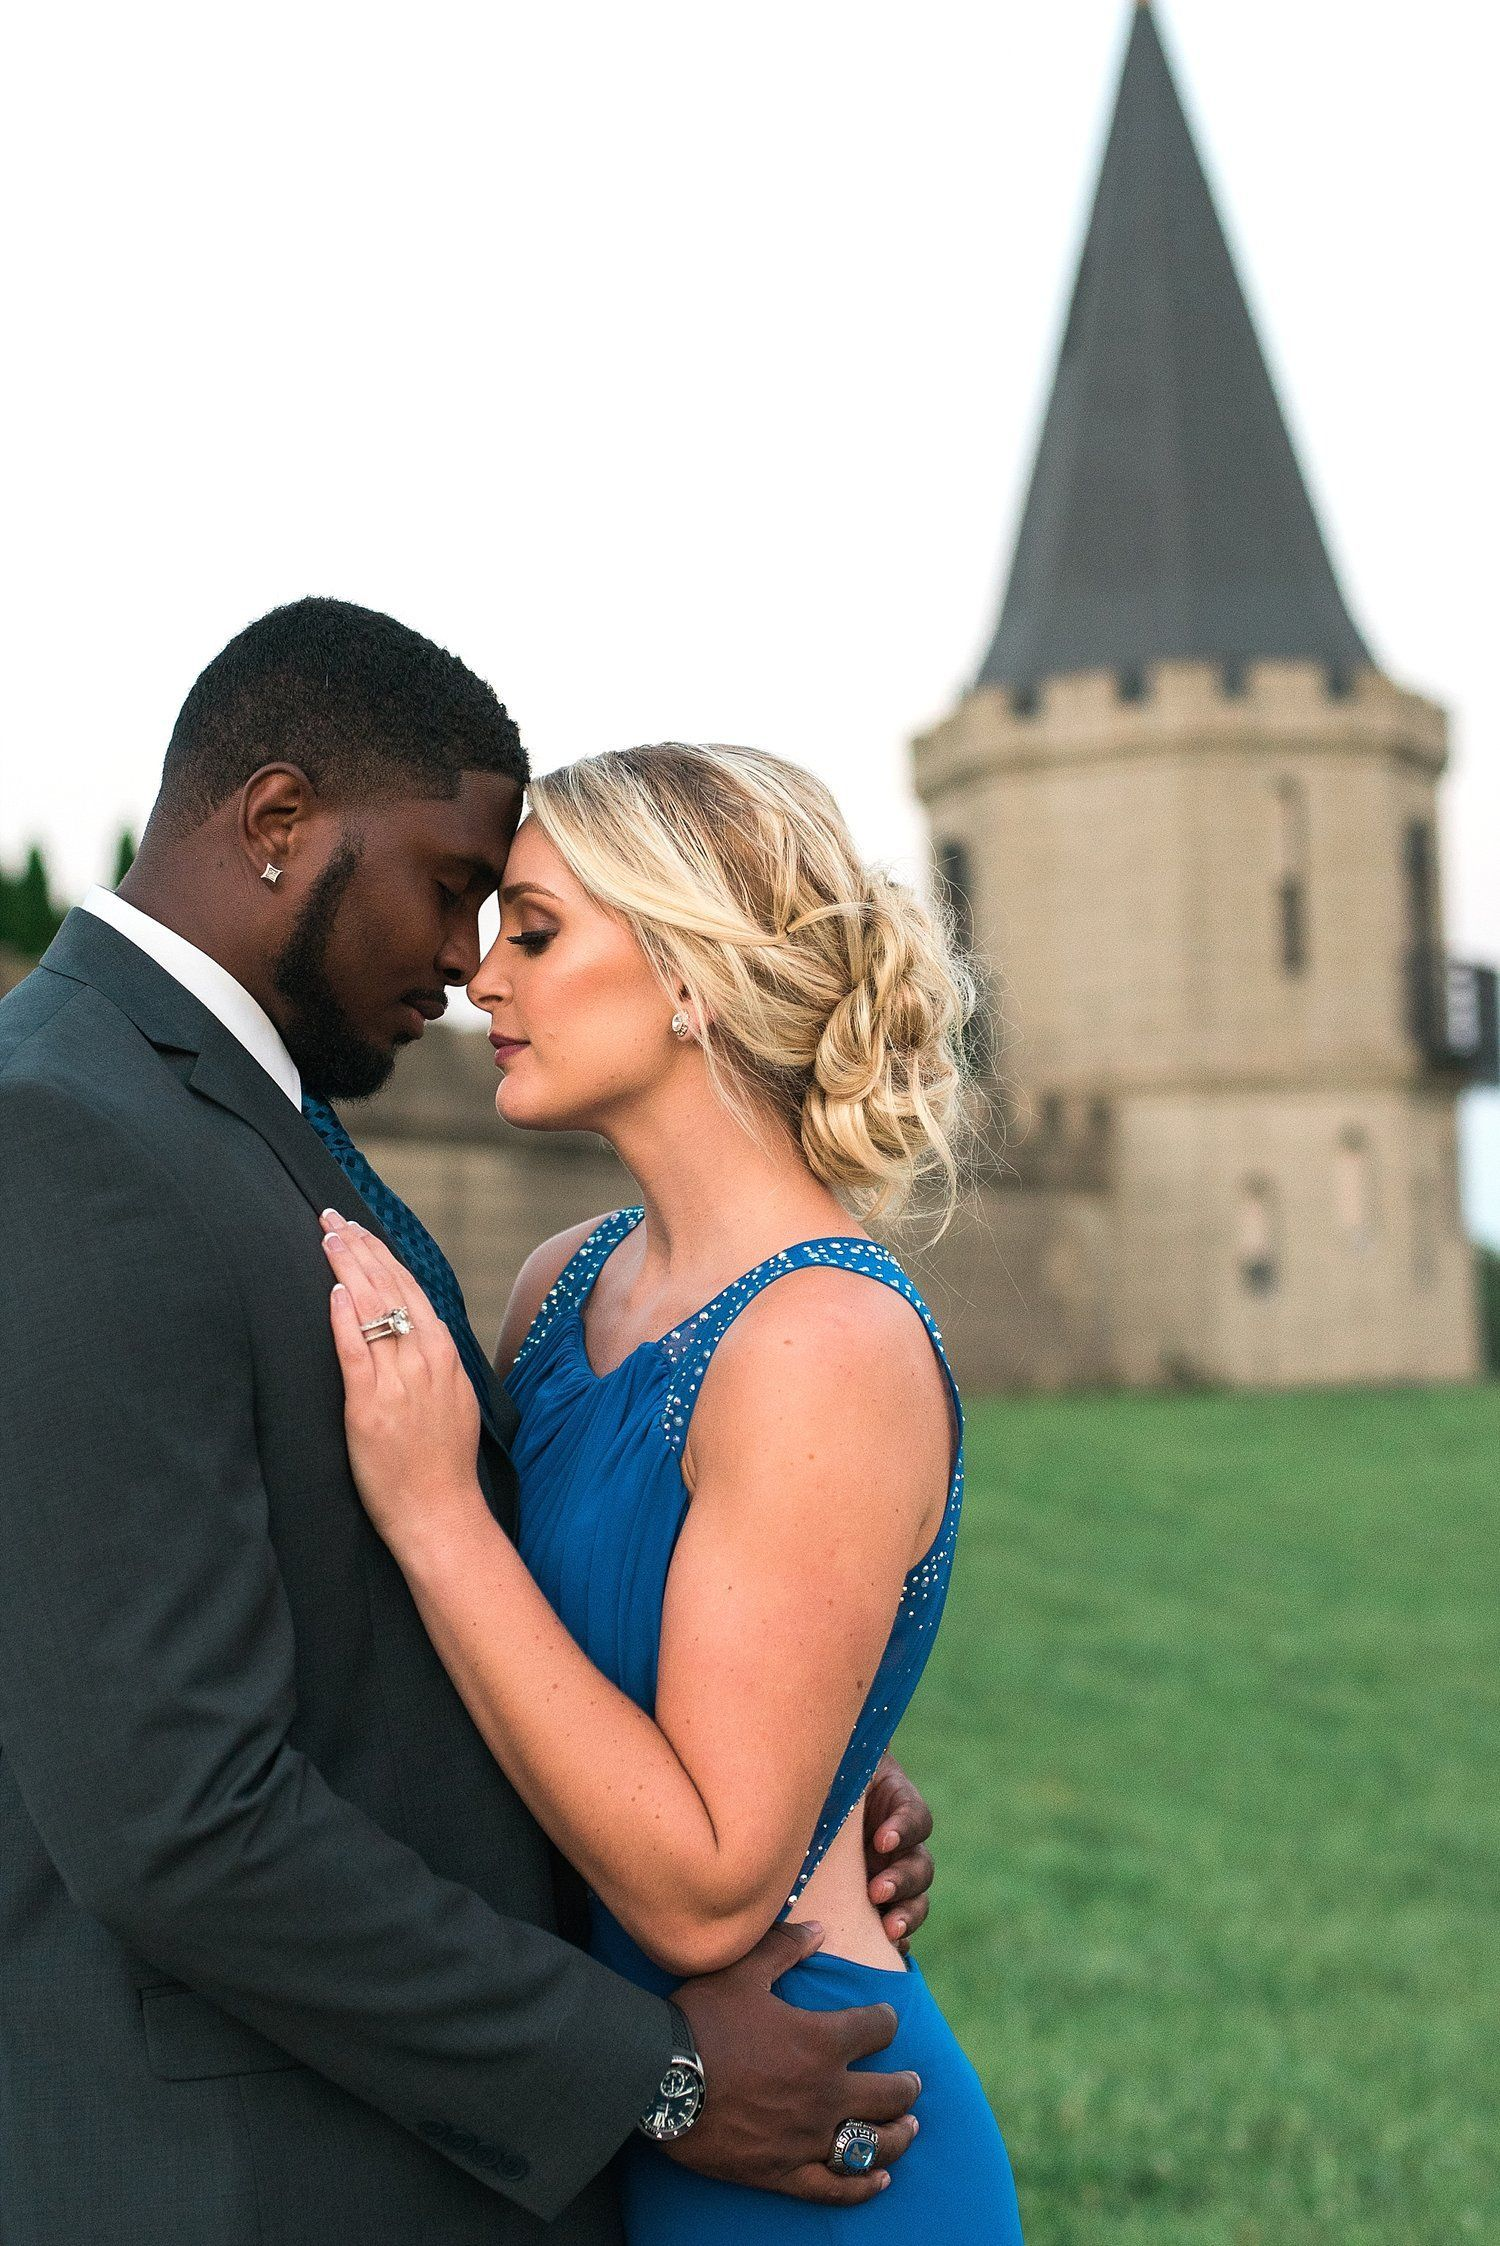 For interracial couples, growing acceptance, with some exceptions